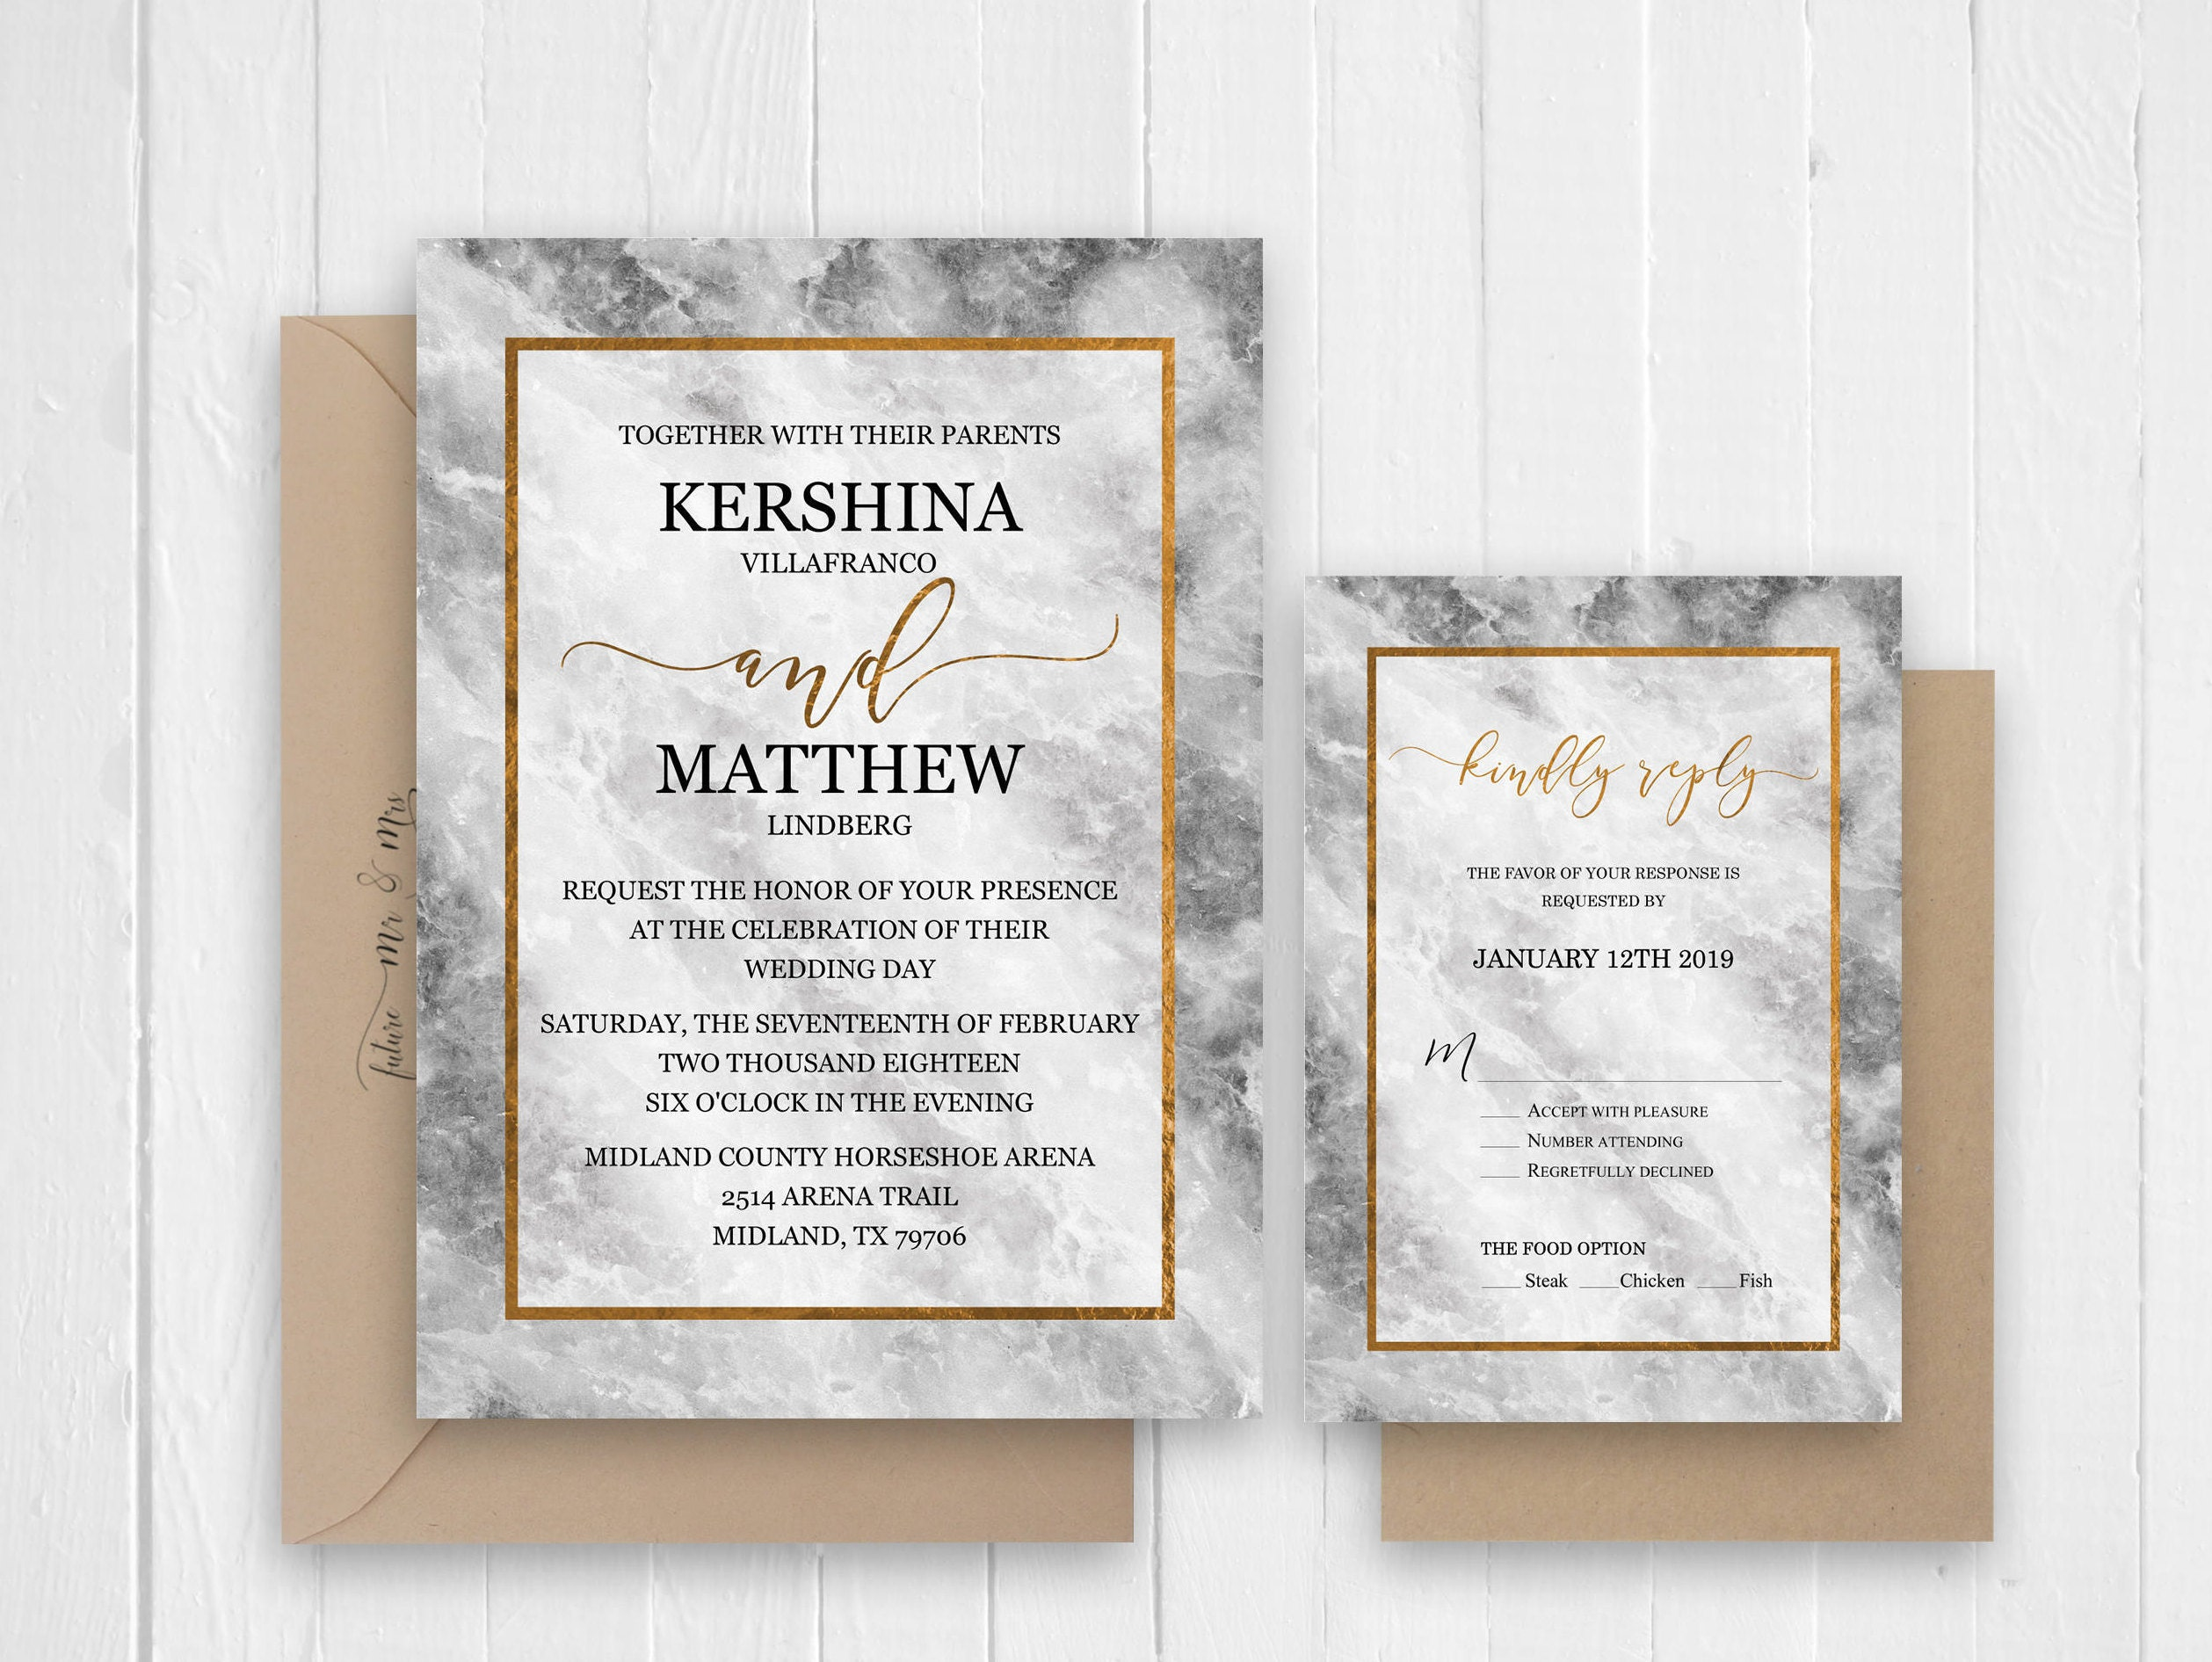 marble wedding invitation set modern wedding invitation details rsvp menu card printed wedding invitation sc338120lb premium card stock - Wedding Invitation Details Card